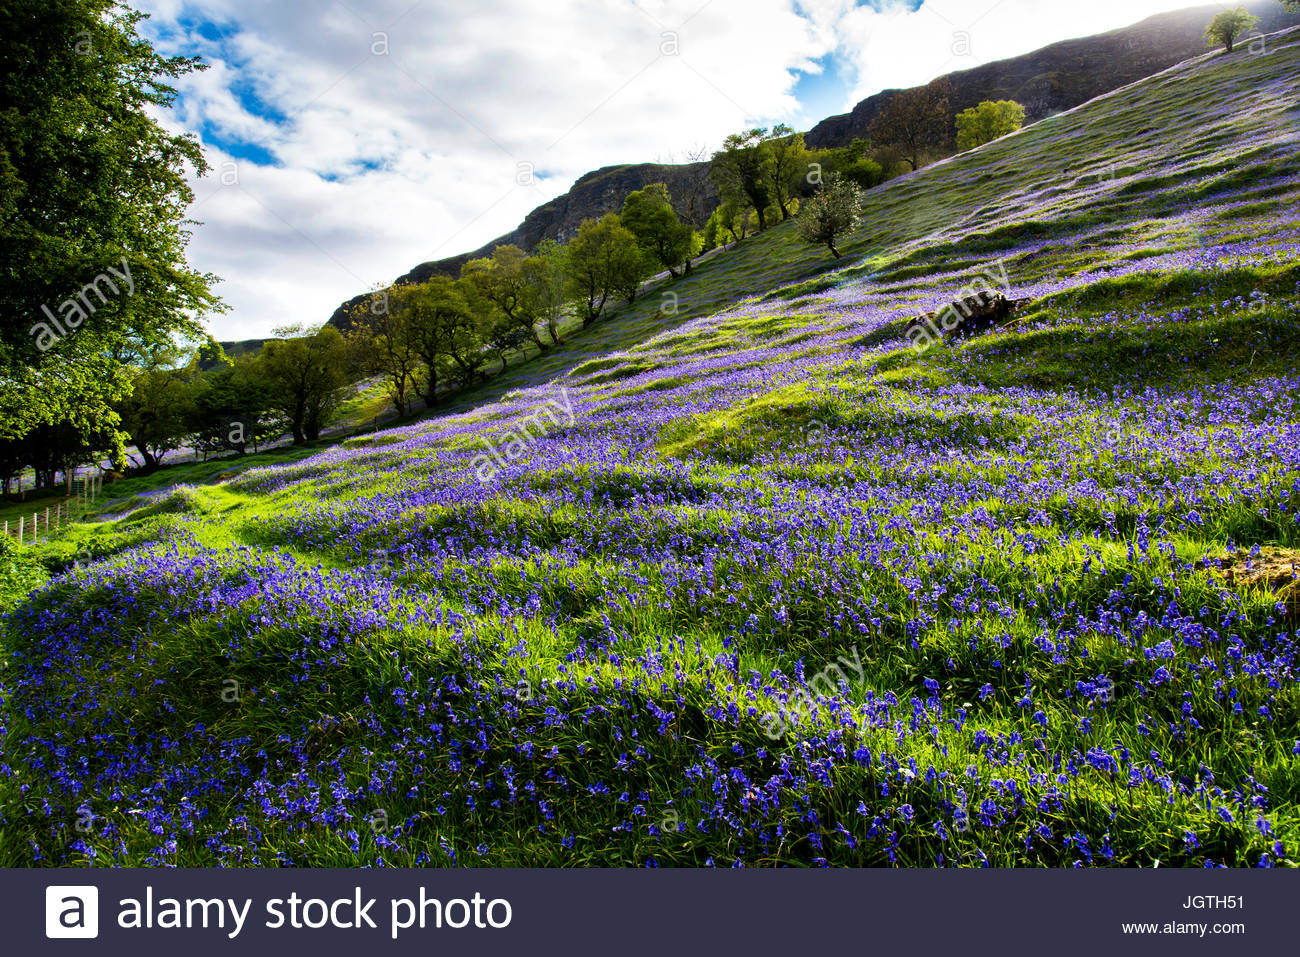 Bluebells bloom in the Glens of Antrim. - Stock Image